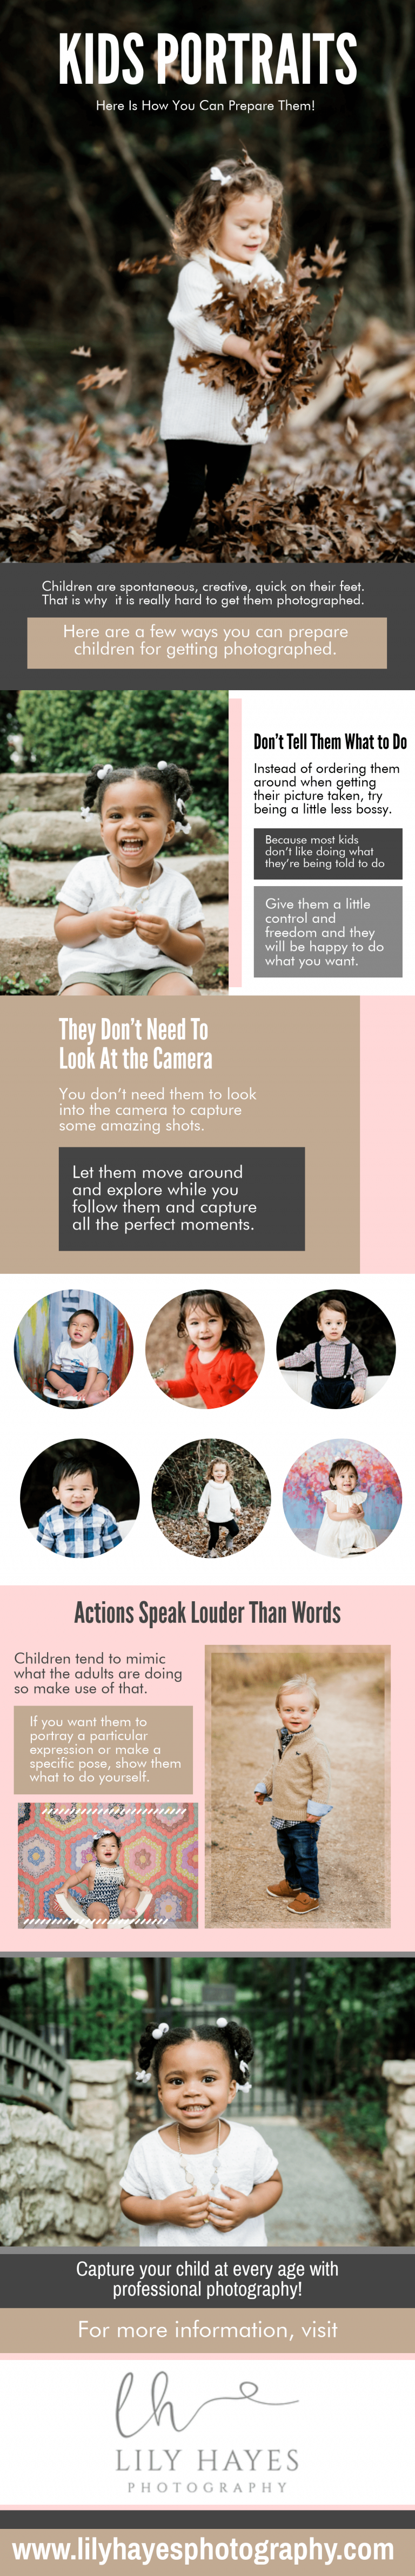 Kids Portraits -Here's how You Can Prepare Them